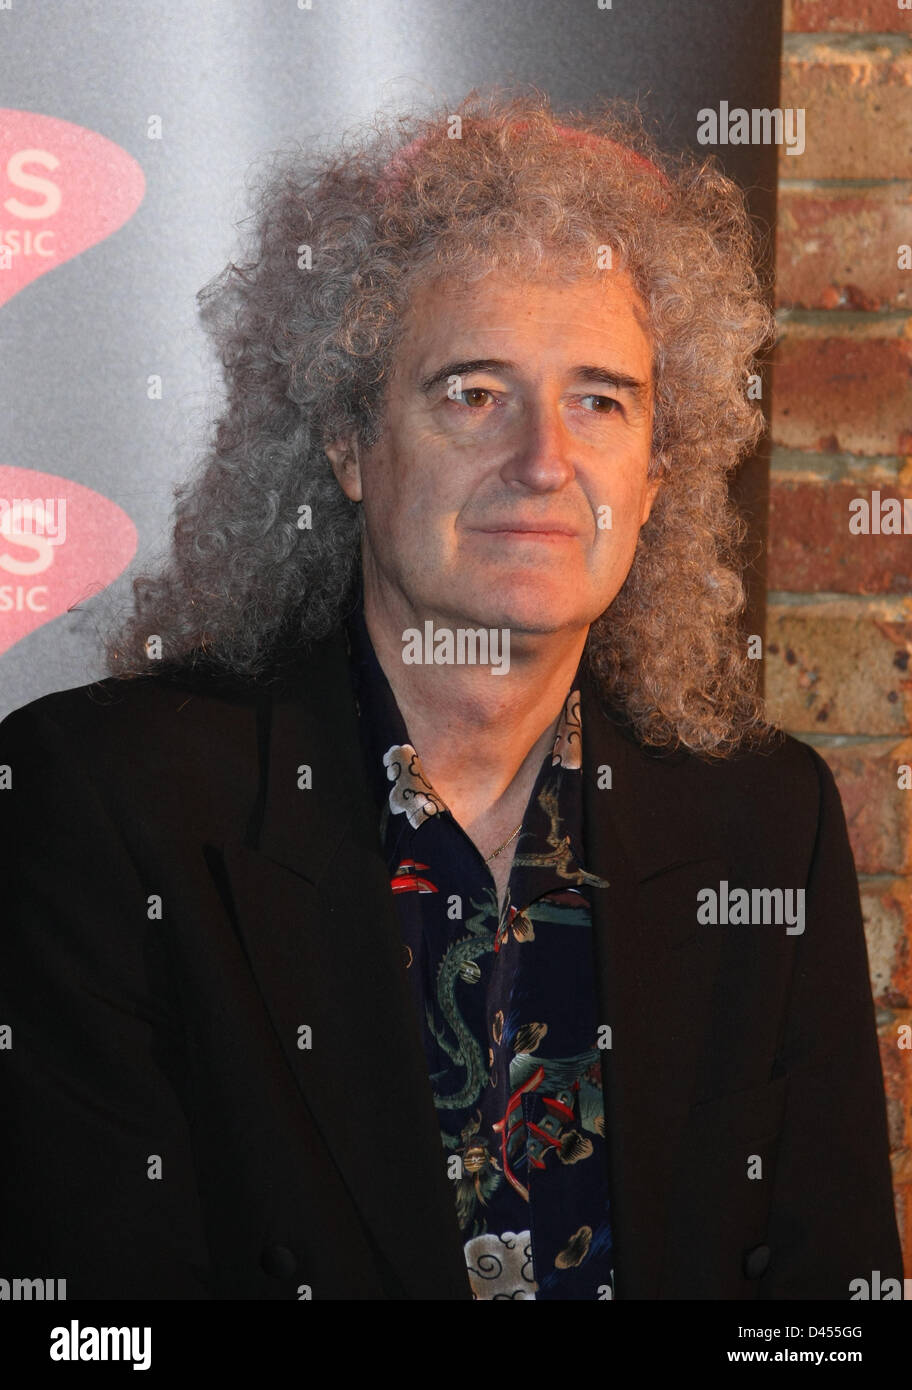 BRIAN MAY PRS FOR MUSIC HONOURS QUEEN WITH A HERITAGE AWARD IMPERIAL COLLEGE LONDON  UK 05 March 2013 Stock Photo